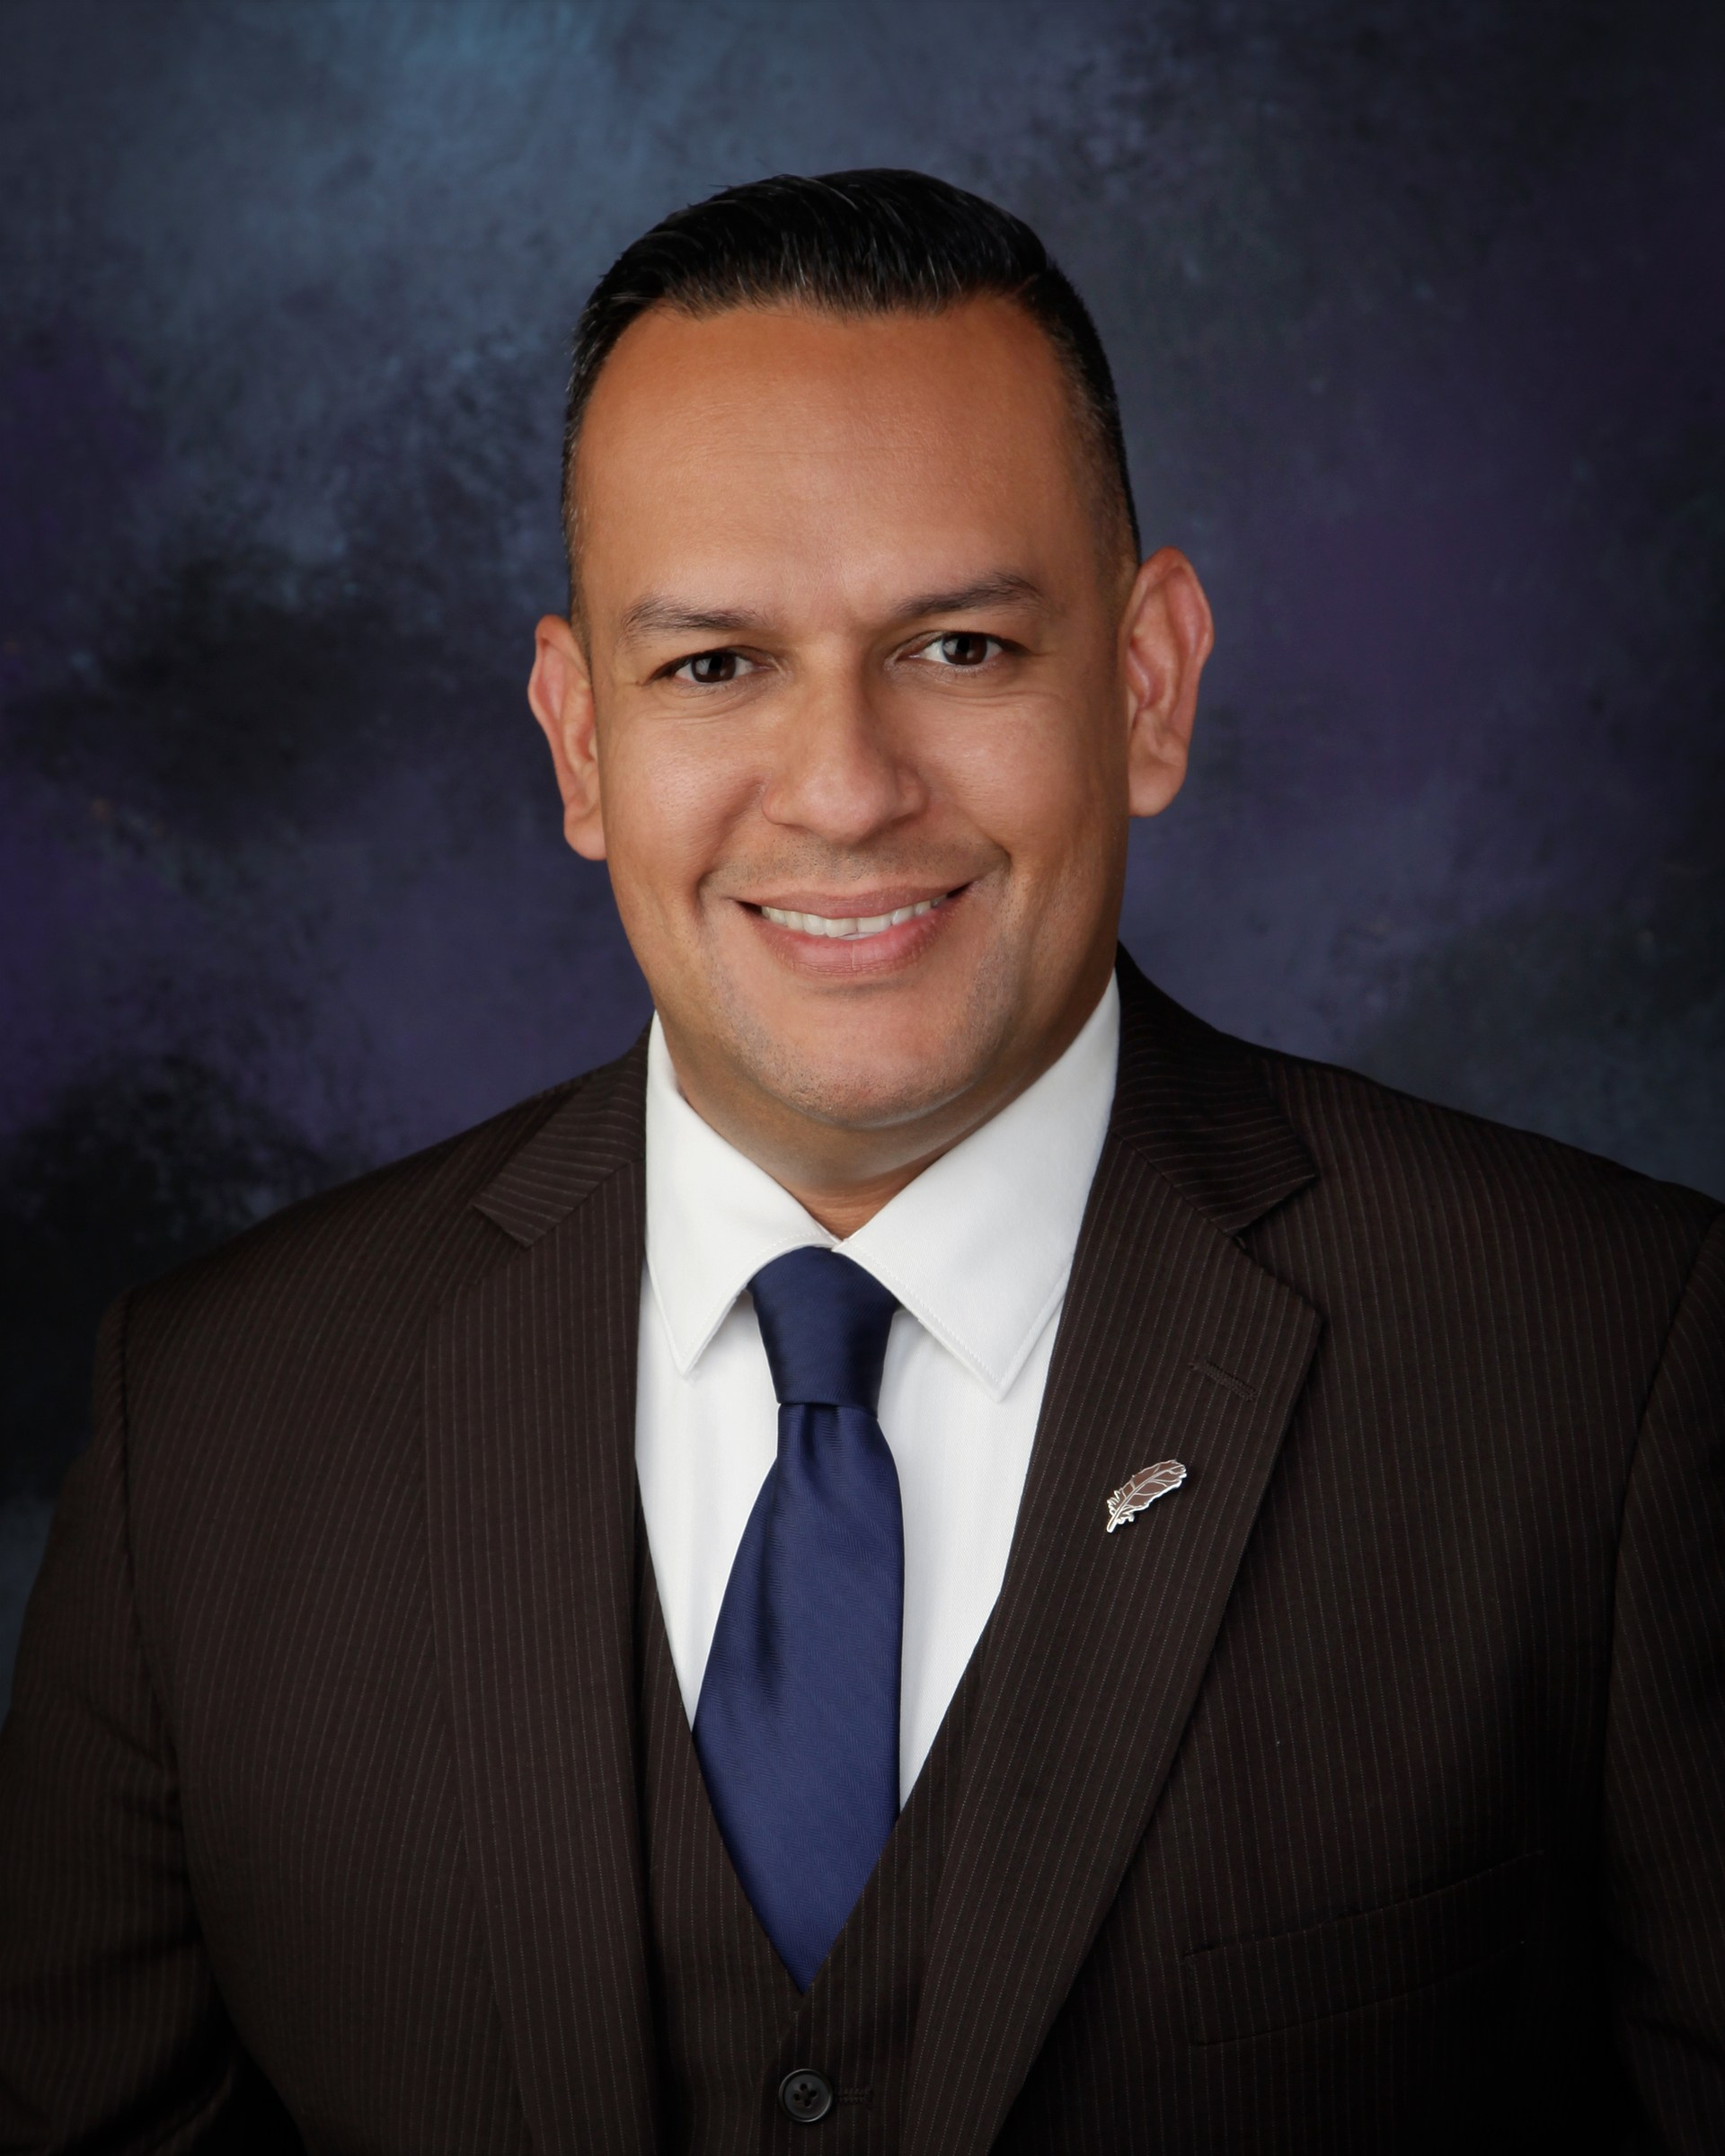 Tony Barrios, Director of Facilities and Op Services